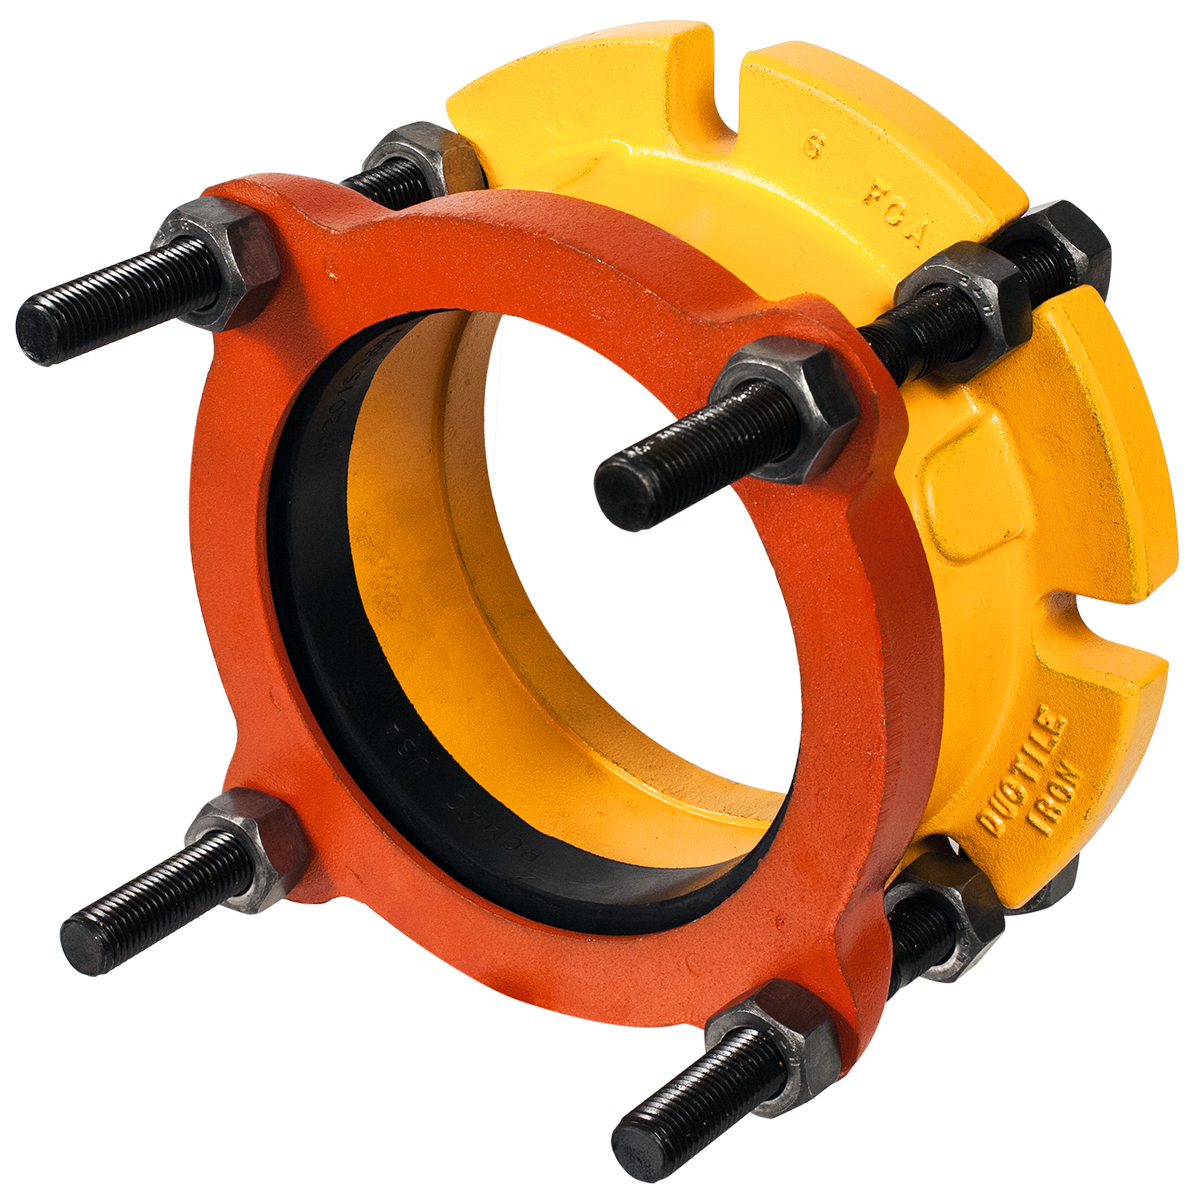 FCA501 - Ductile iron flange coupling adapter Connects plain-end pipe to a flange.Nominal Sizes3 - 16 inchesWorking PressureUp to 260 psiPipe CompatibilitySteel, cast iron, asbestos cement, plastic and other types of pipe